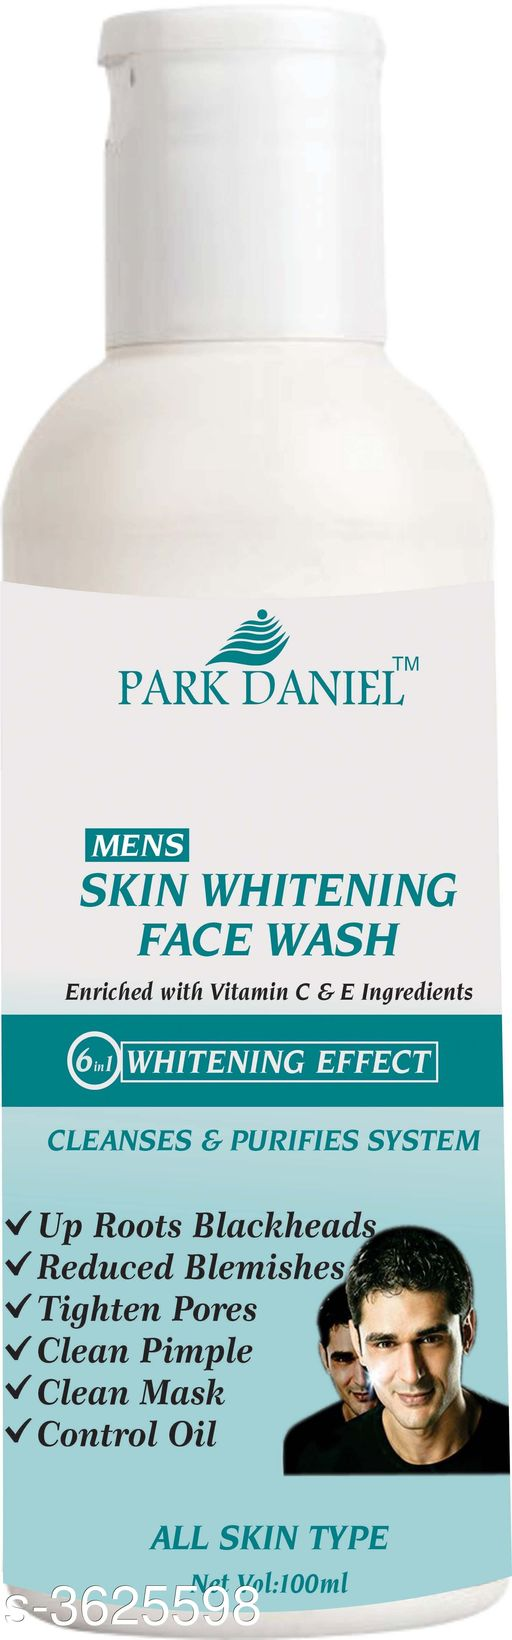 Face Mens Instant Whitening Face Wash for Instant Face Whitening & Brightening(100 ML)   *Product Name* Mens Instant Whitening Face Wash for Instant Face Whitening & Brightening(100 ML)  *Brand Name* Park Daniel  *Product Type* Face Wash  *Capacity* 100 ml  *Product Description*